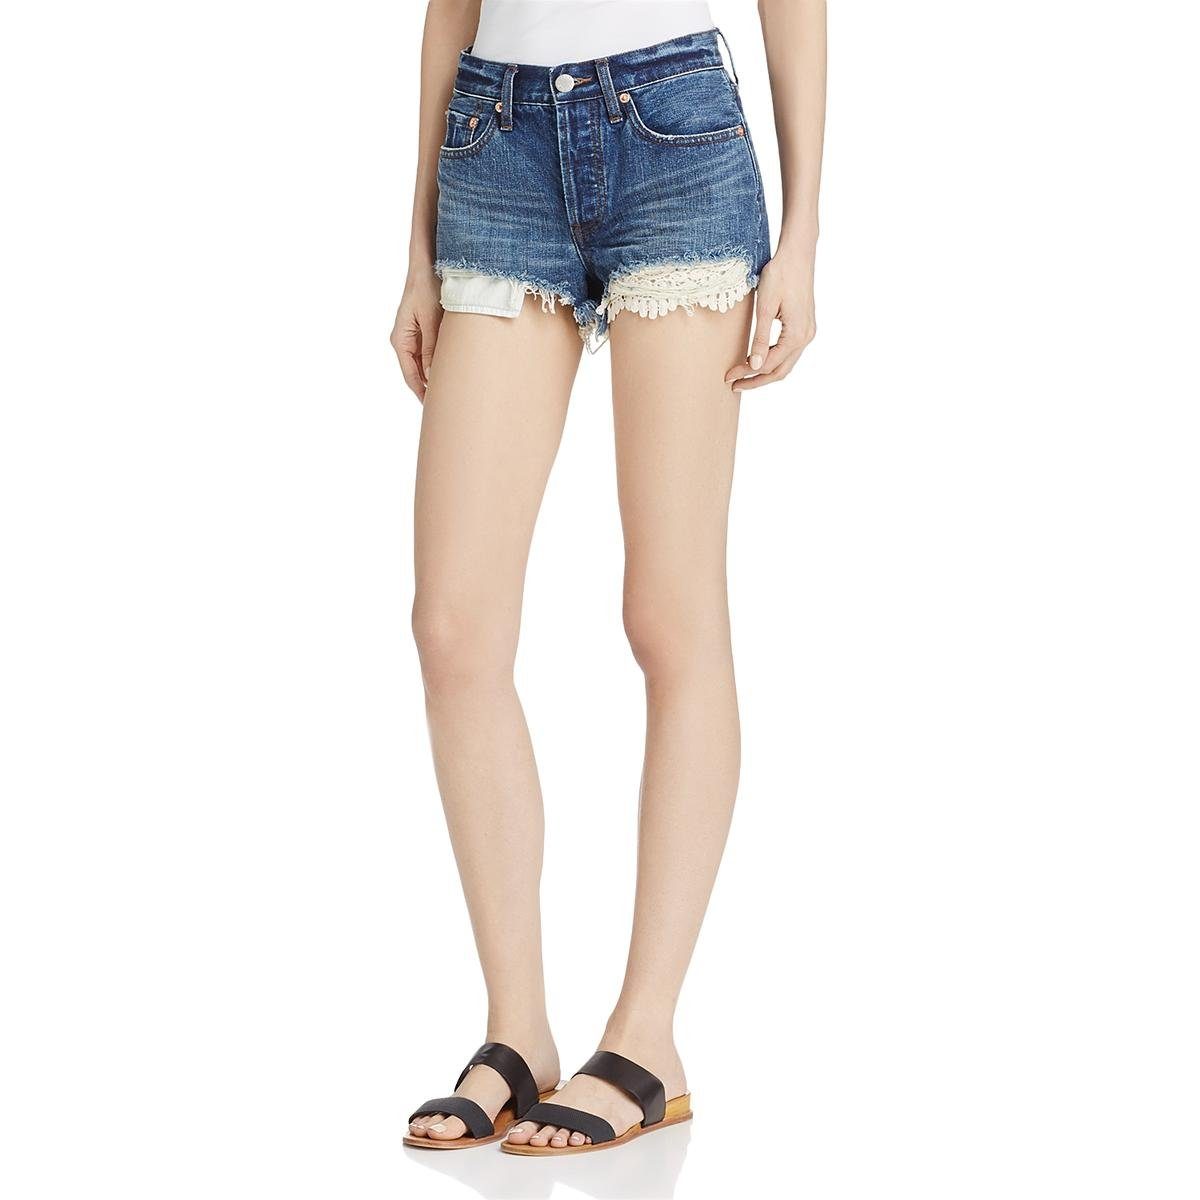 Free People Womens Daisy Denim Lace Inset Cutoff Shorts Blue 30